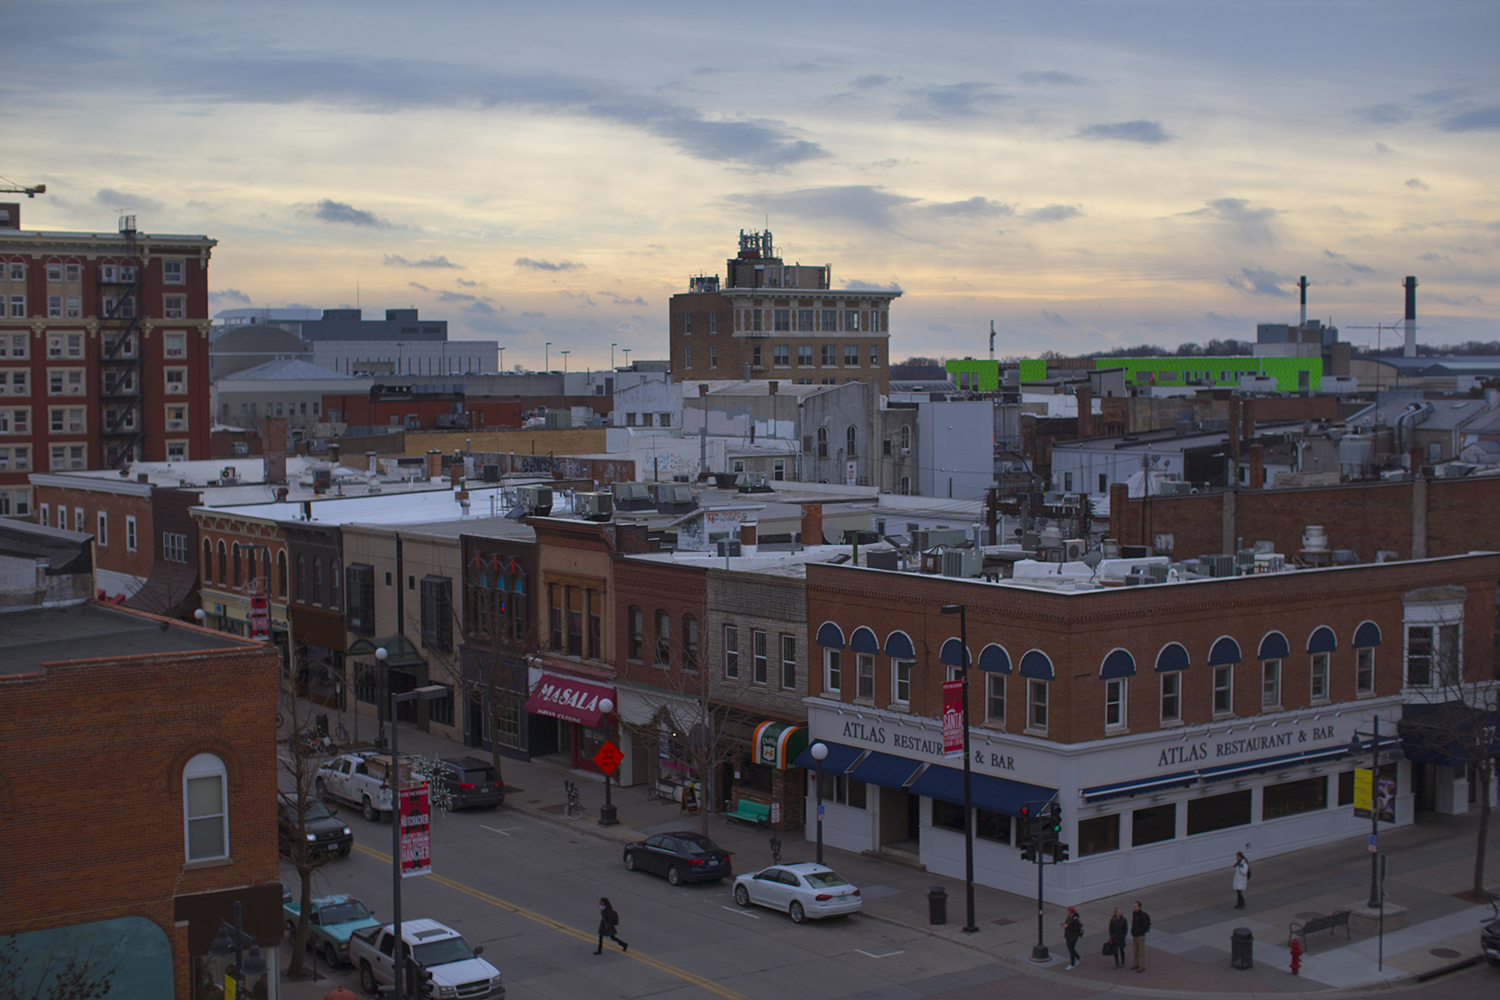 People walk around downtown on Tuesday, Jan 31, 2017. Iowa City was named City of Literature by Unesco City of Literature.